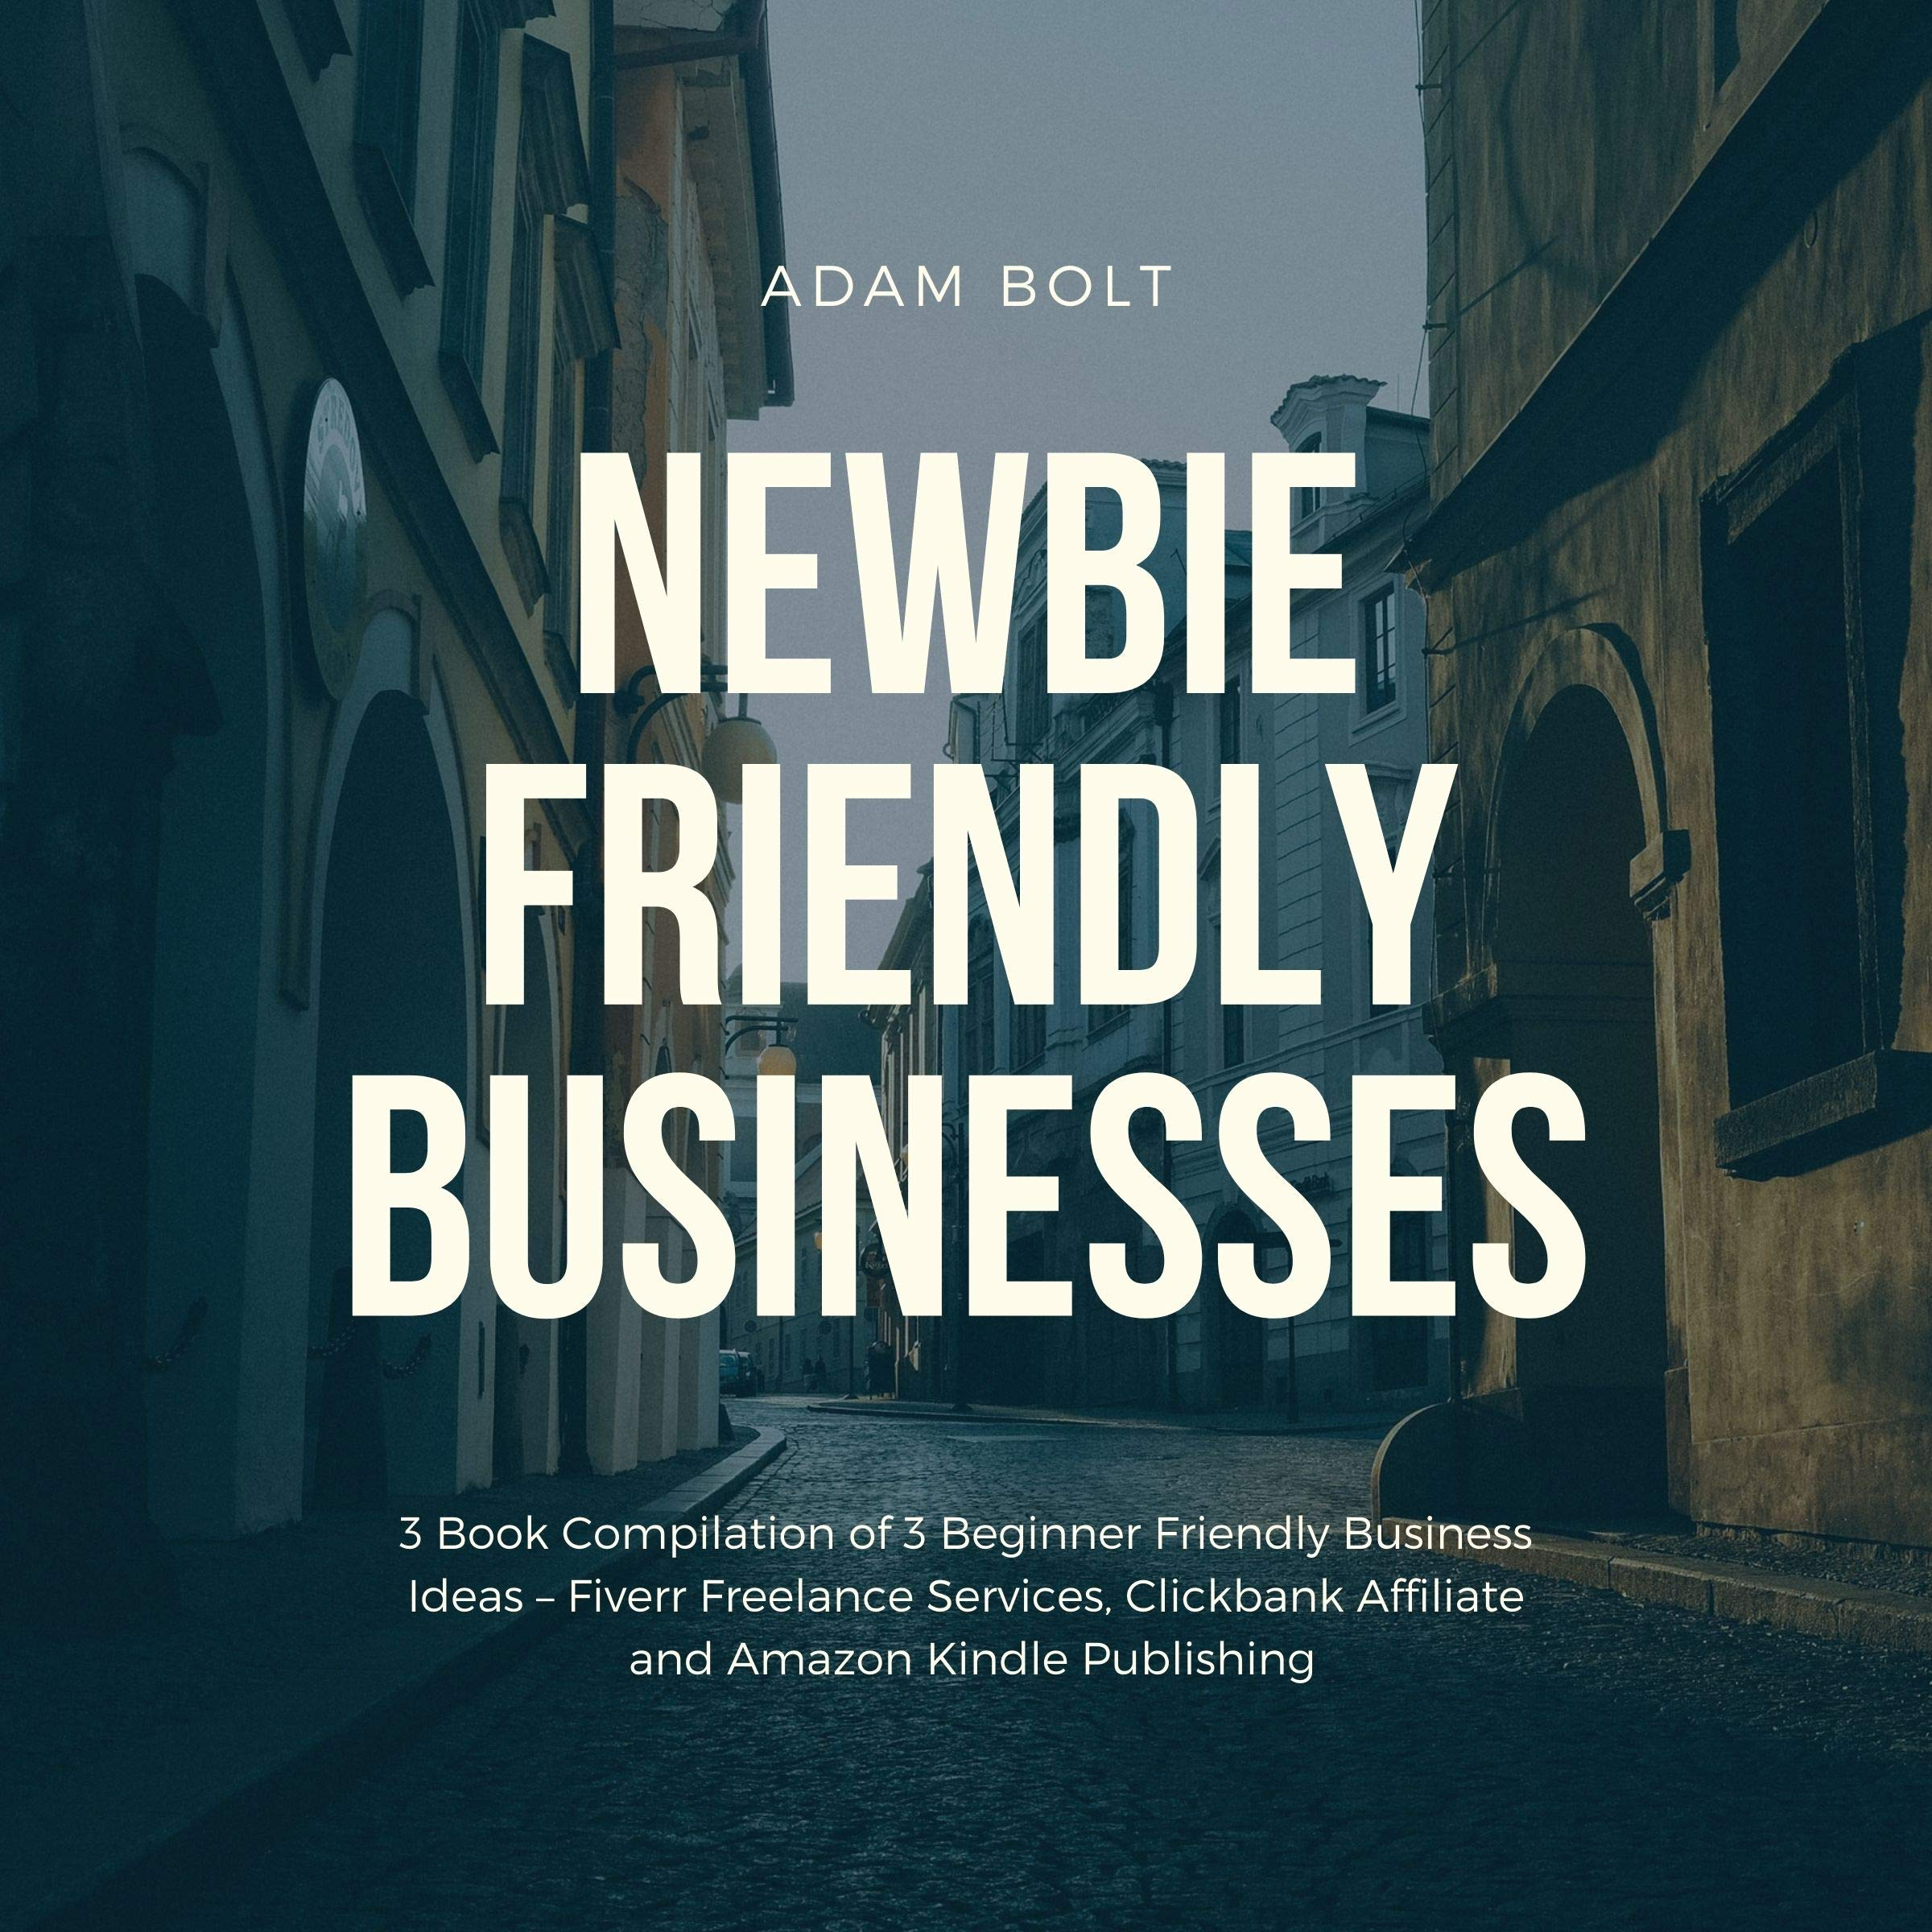 Newbie Friendly Businesses: 3 Book Compilation of 3 Beginner Friendly Business Ideas – Fiverr Freelance Services, Clickbank Affiliate and Amazon Kindle Publishing